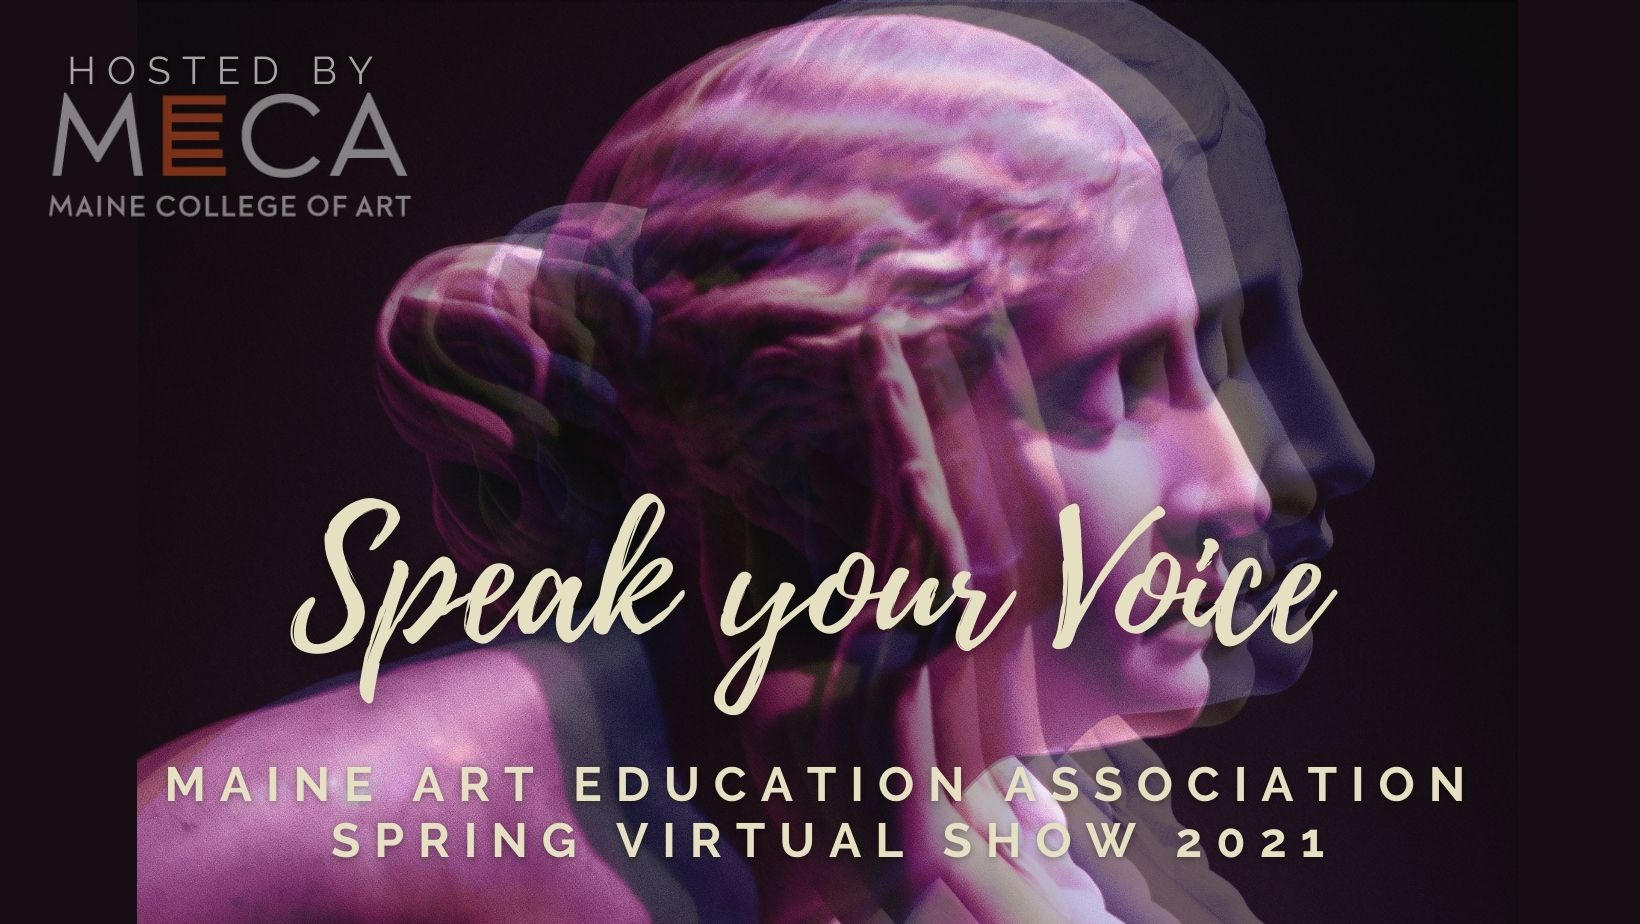 """Image of a statue of a woman's face in profile with a hand lifted to her ear. The text in the image says """"Speak your Voice: Maine Art Education Association Spring Virtual Show 2021. Hosted by MECA."""""""